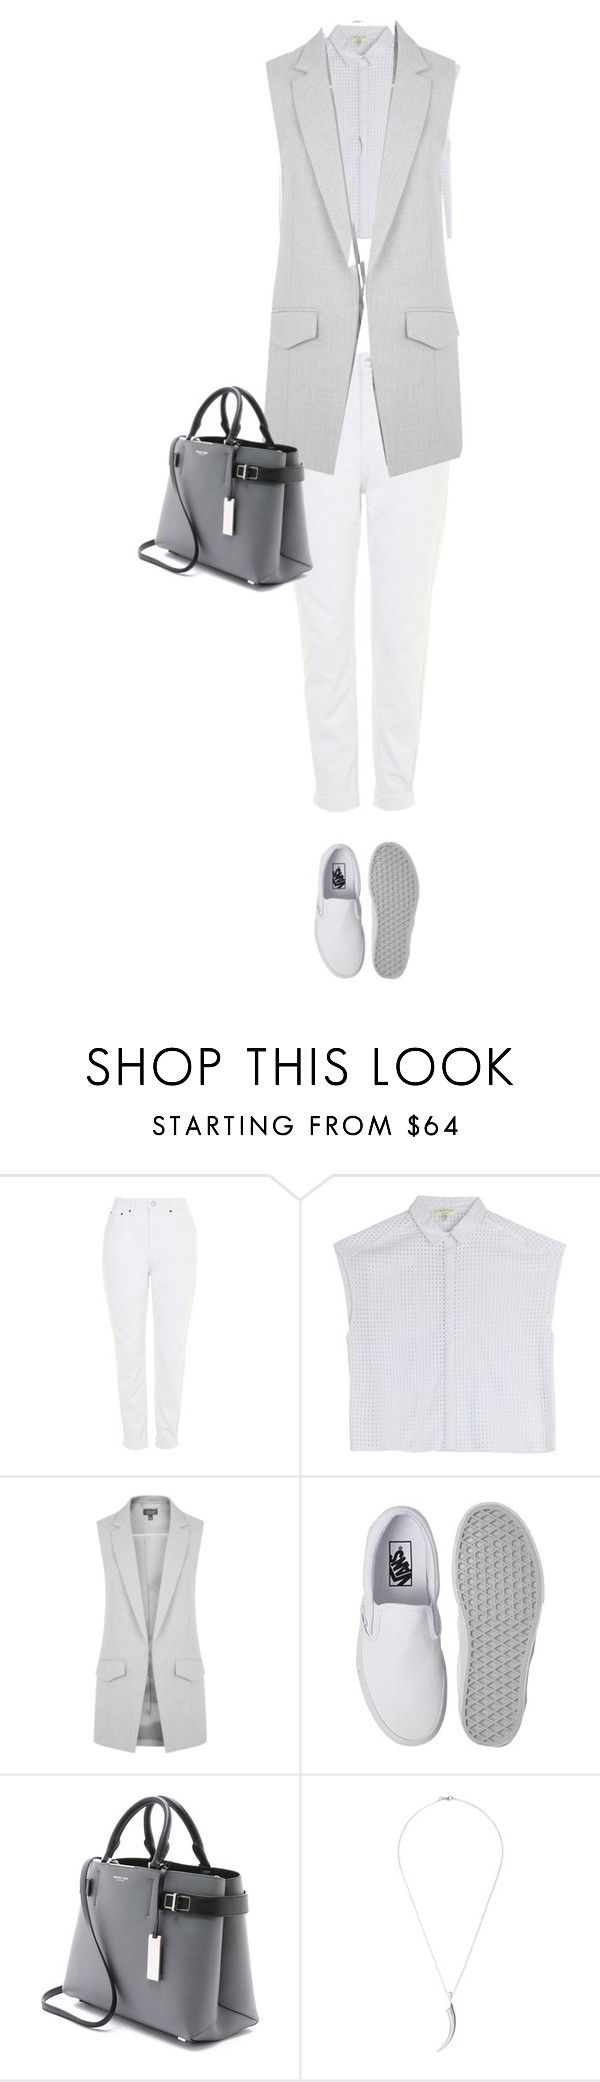 """Untitled #689"" by vibestokill ❤ liked on Polyvore featuring Topshop, rag & bone, Vans, Michael Kors, Shaun Leane, women's clothing, women's fashion, women, female and woman"